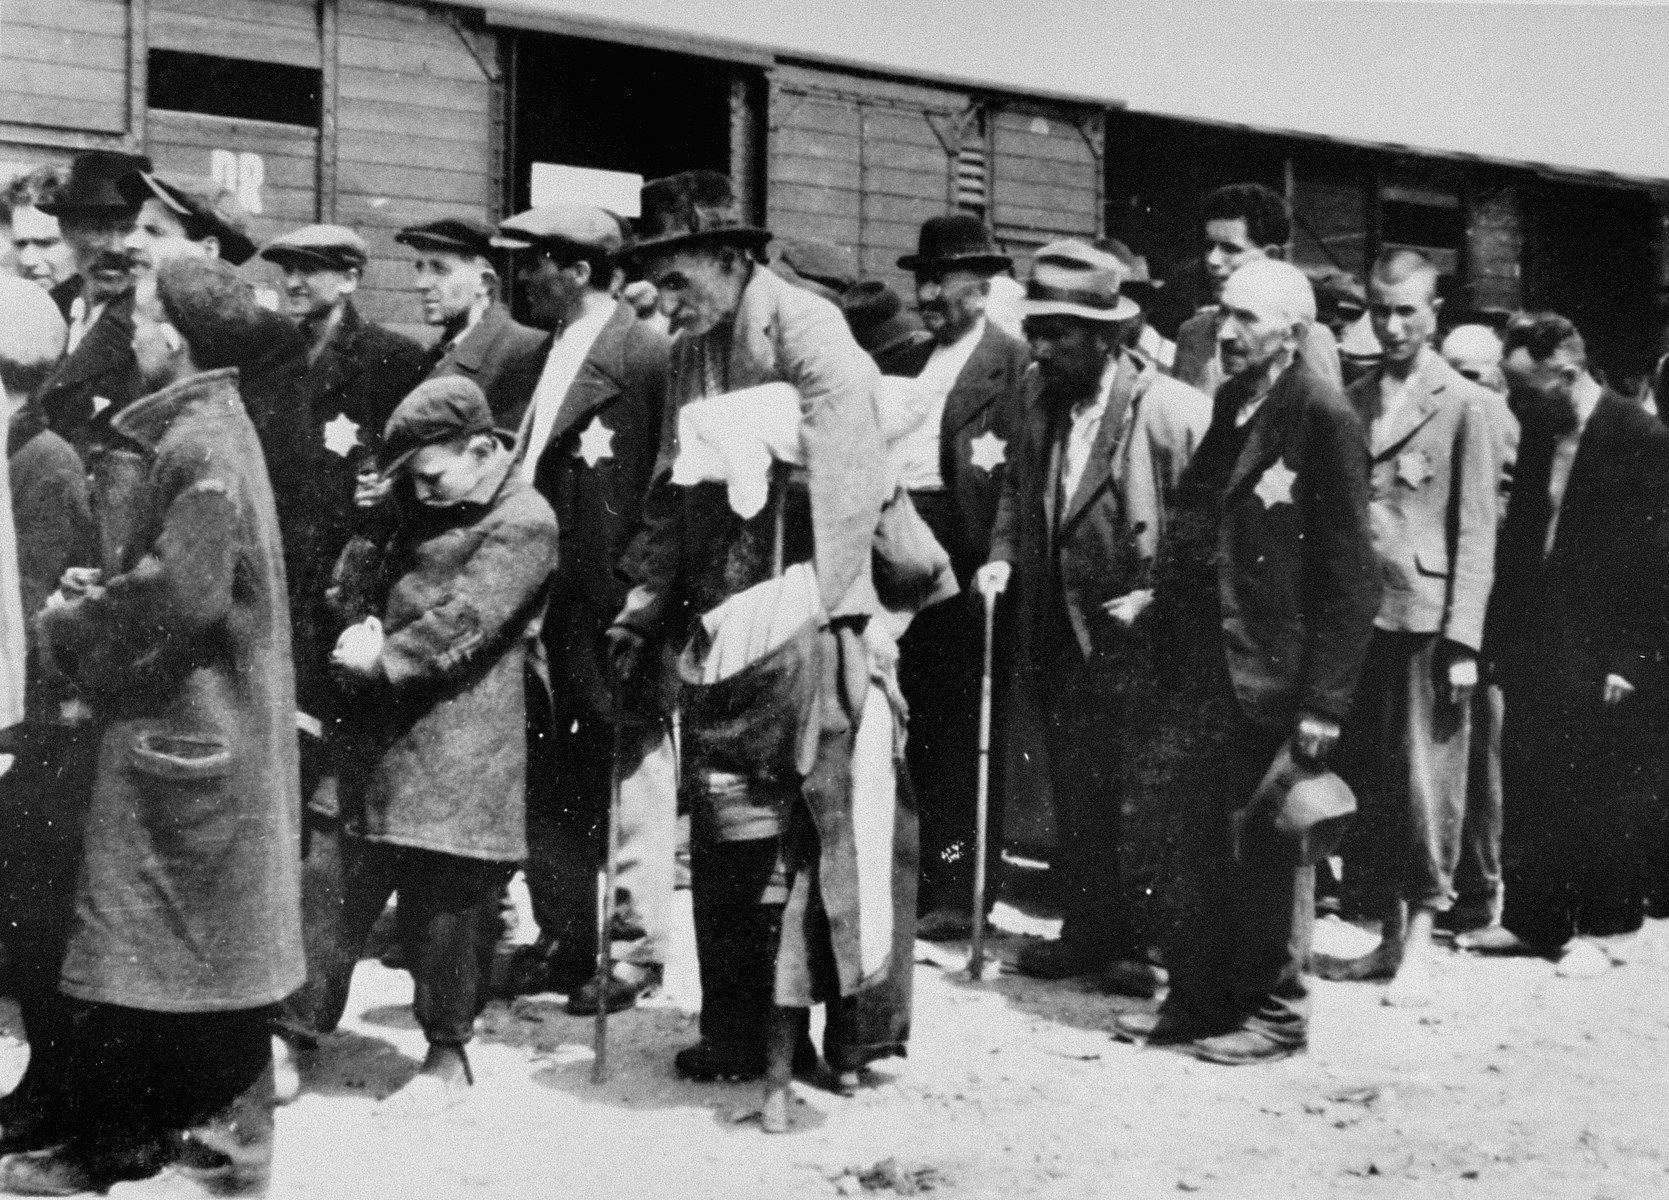 Jewish men and boys from Subcarpathian Rus await selection on the ramp at Auschwitz-Birkenau.